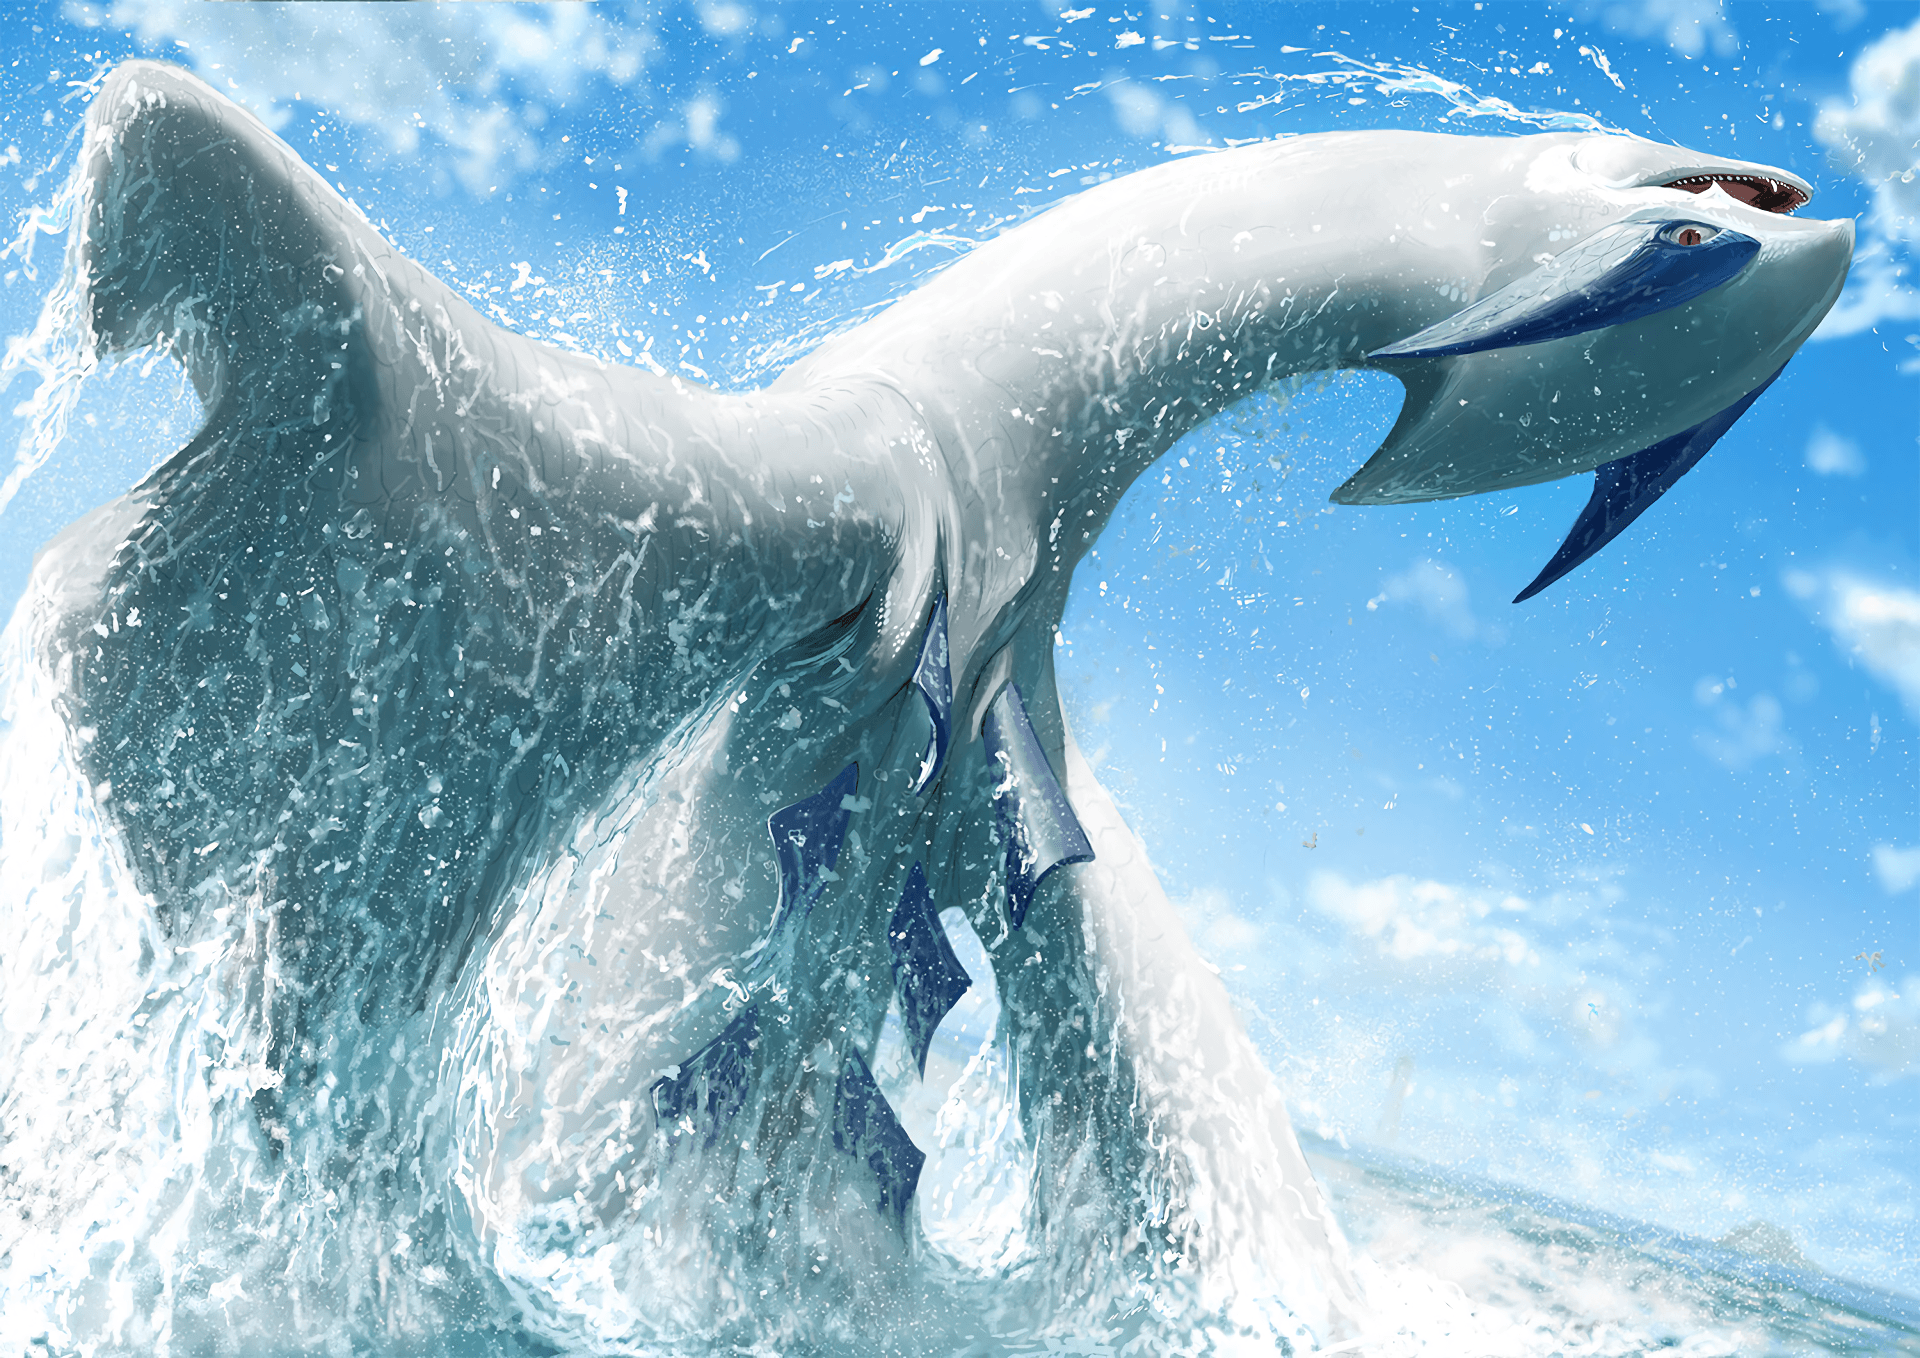 44 Lugia (Pokémon) HD Wallpapers | Background Images - Wallpaper Abyss